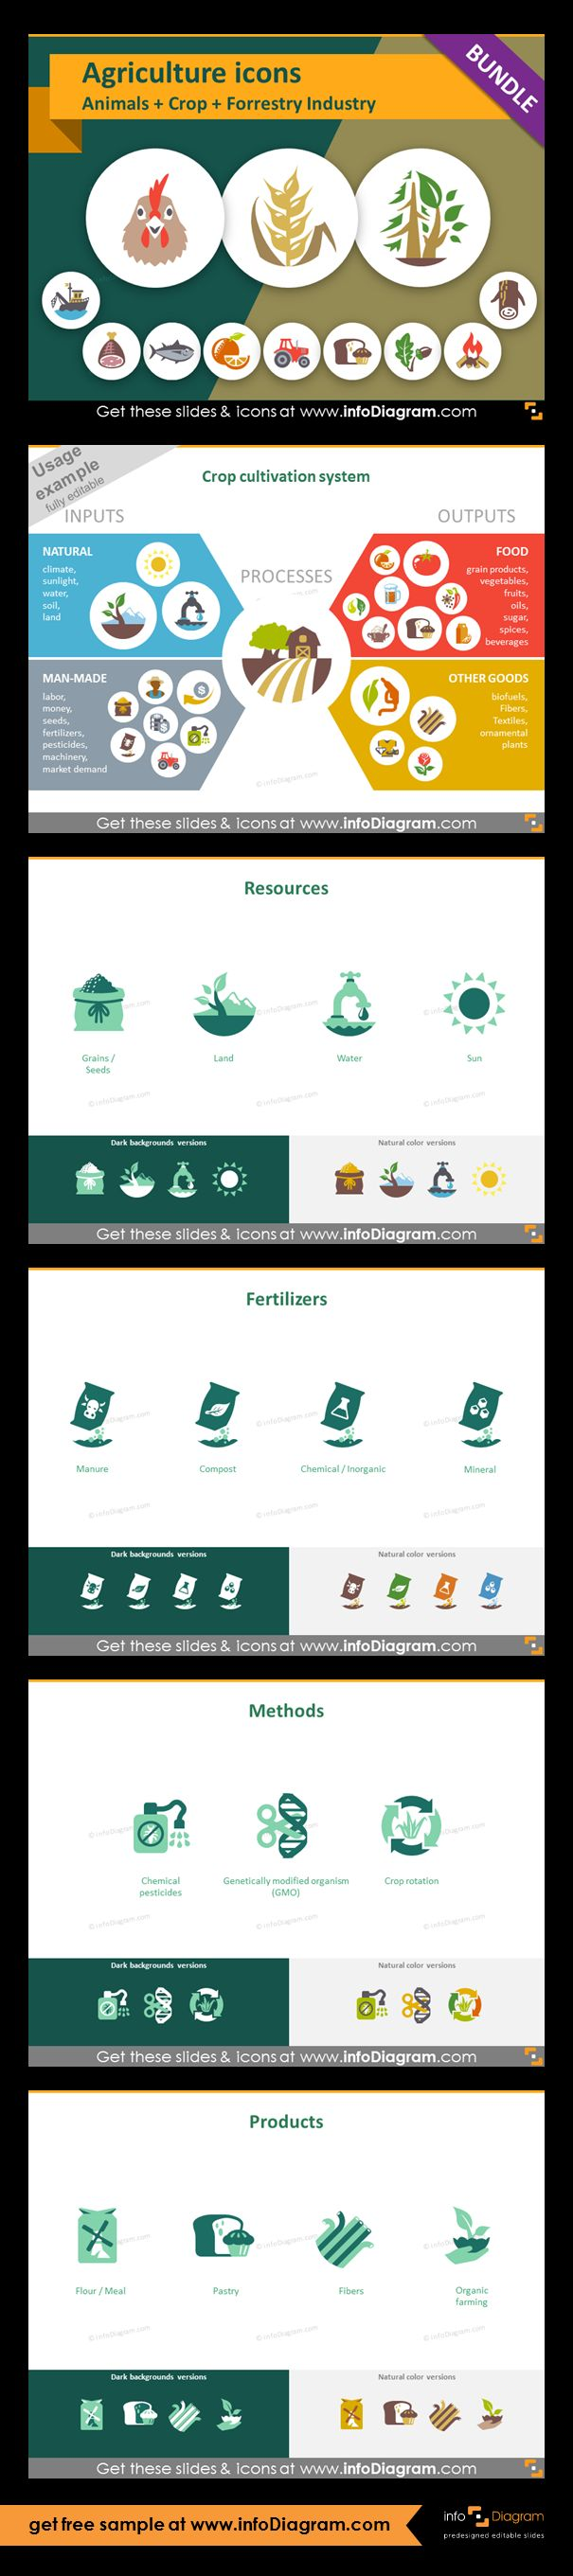 Food and Agriculture icons: Animals, Crop Cultivation, Forestry. All symbols in simple flat style, suitable for Metro UI style graphics. Icons provided in 5 versions. Graphic presenting crop cultivation process with icons of inputs and outputs. Resources of crops cultivation with graphics: seeds, land, water, sun. Fertilizers: manure, compost, chemical, mineral. Methods of crop cultivation: chemical pesticides, genetically modified organism (GMO), crop rotation.